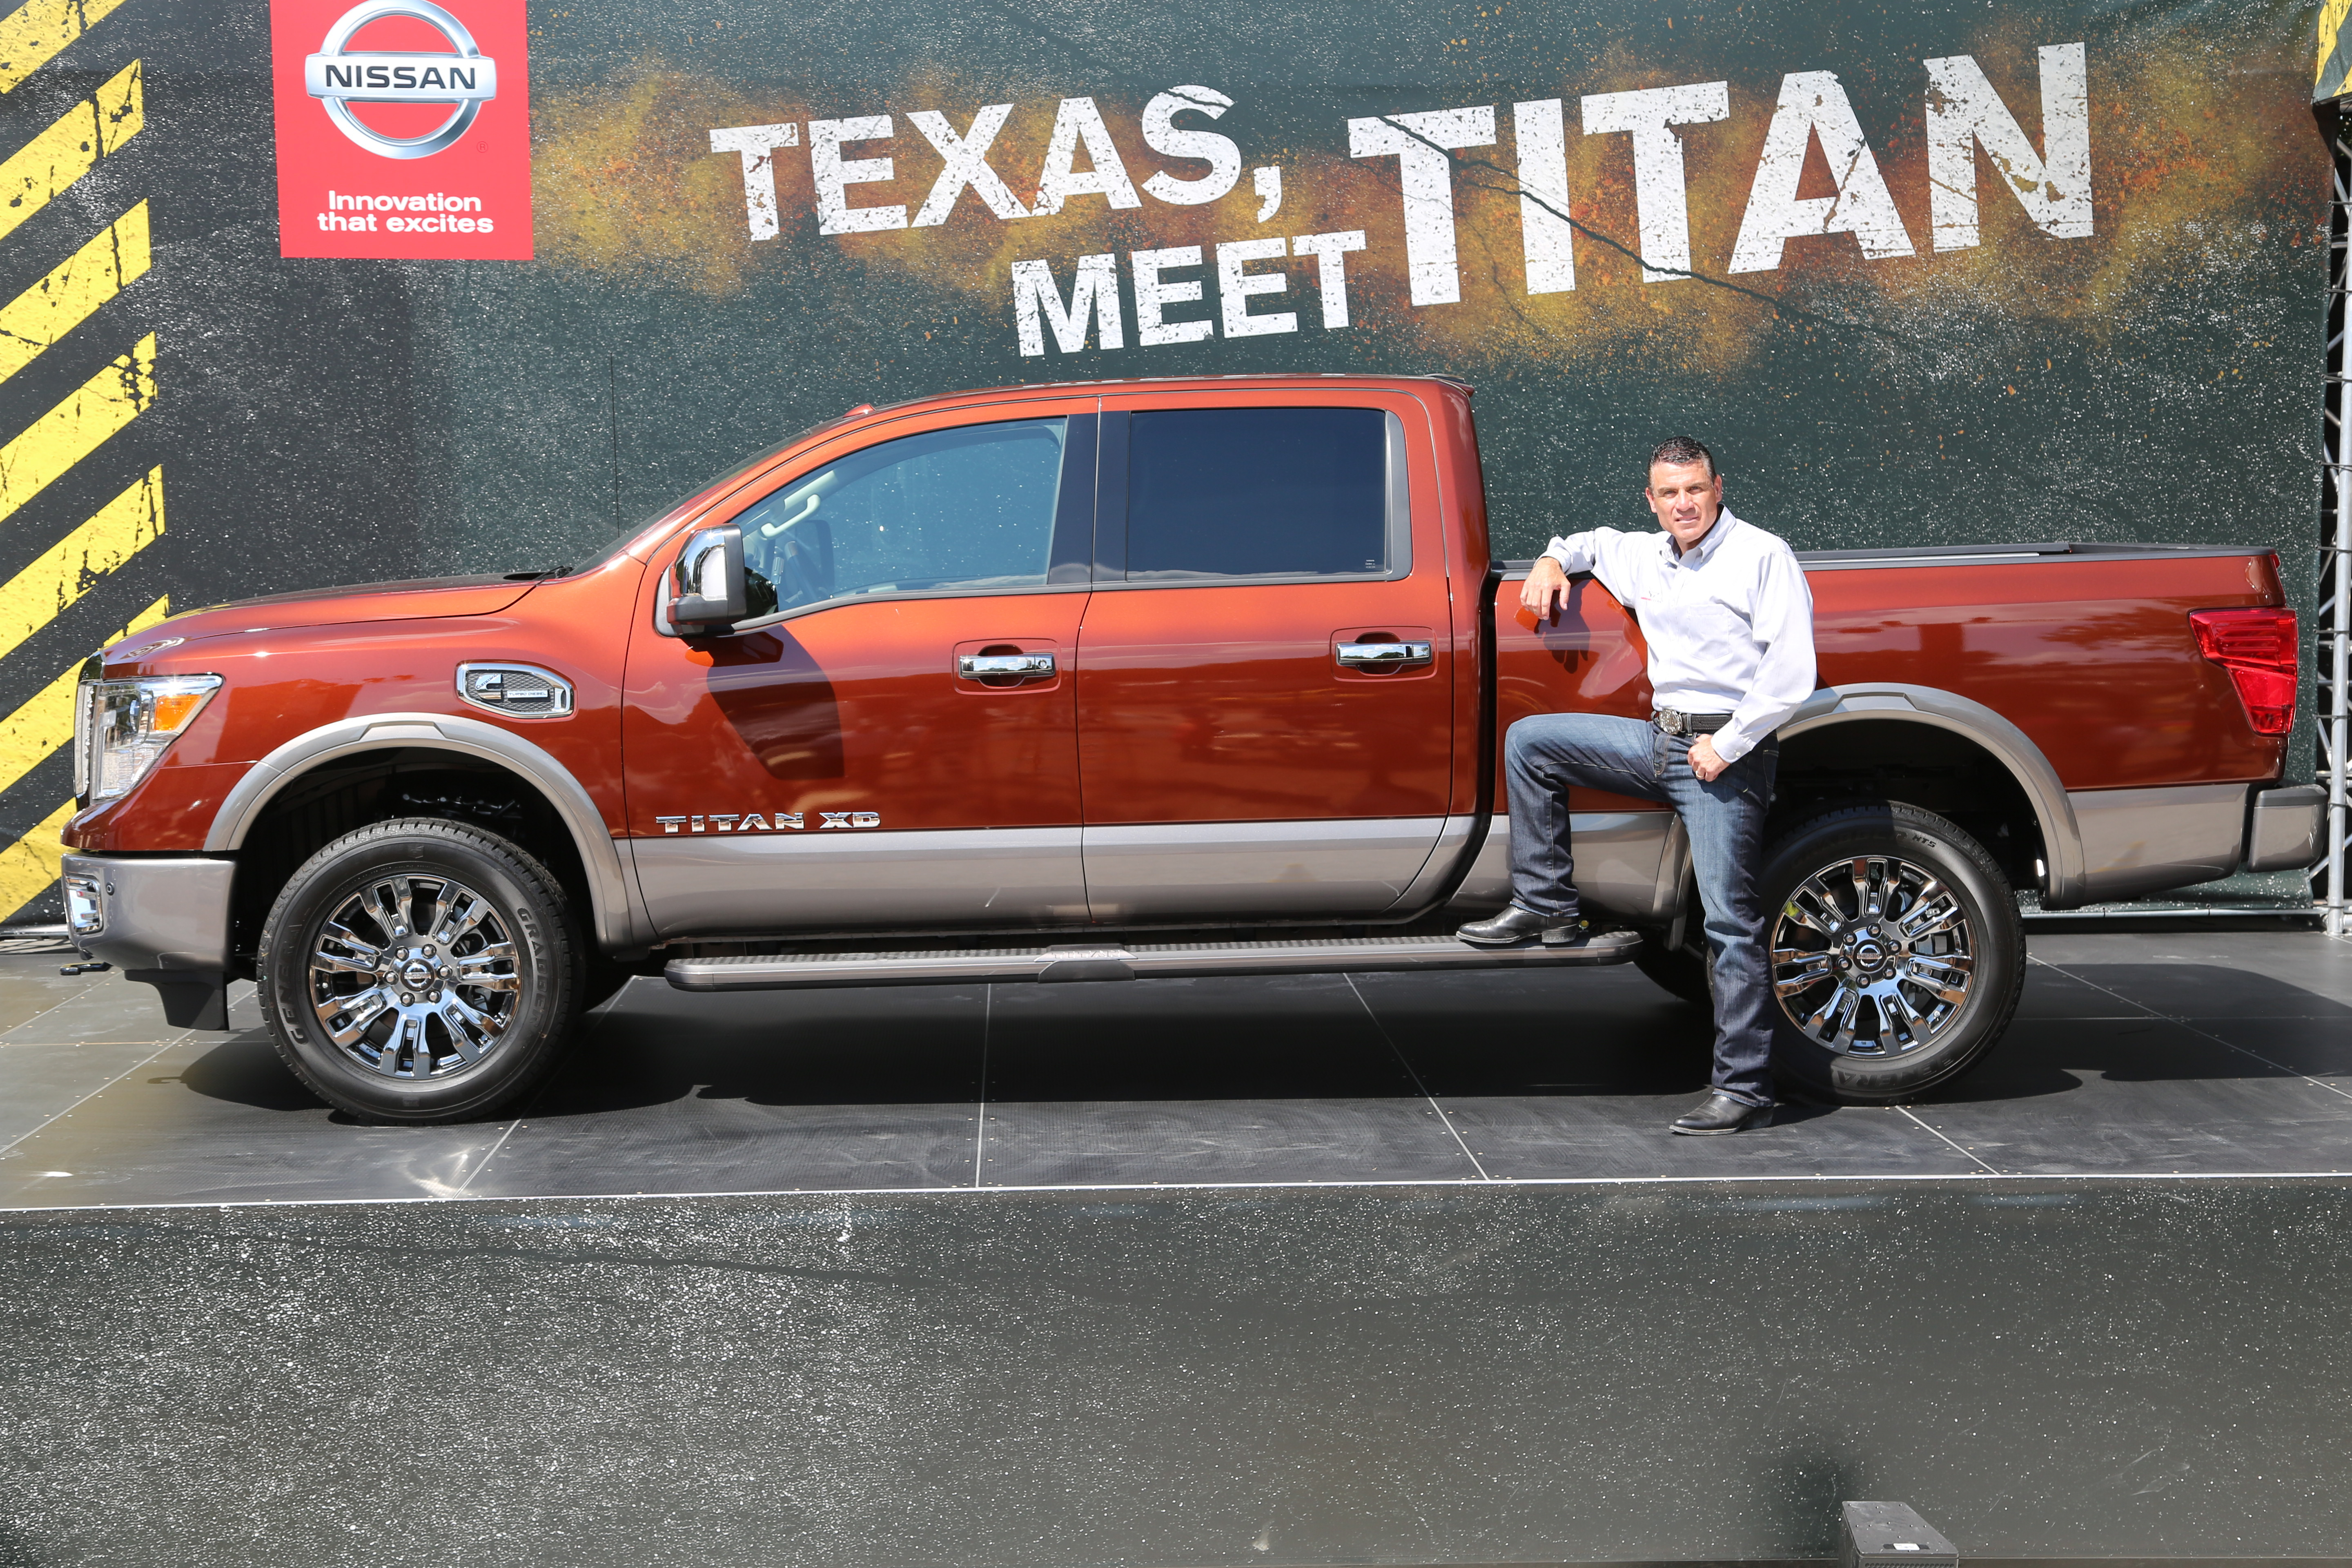 2016 Titan Xd Leads Major Nissan Presence At The State